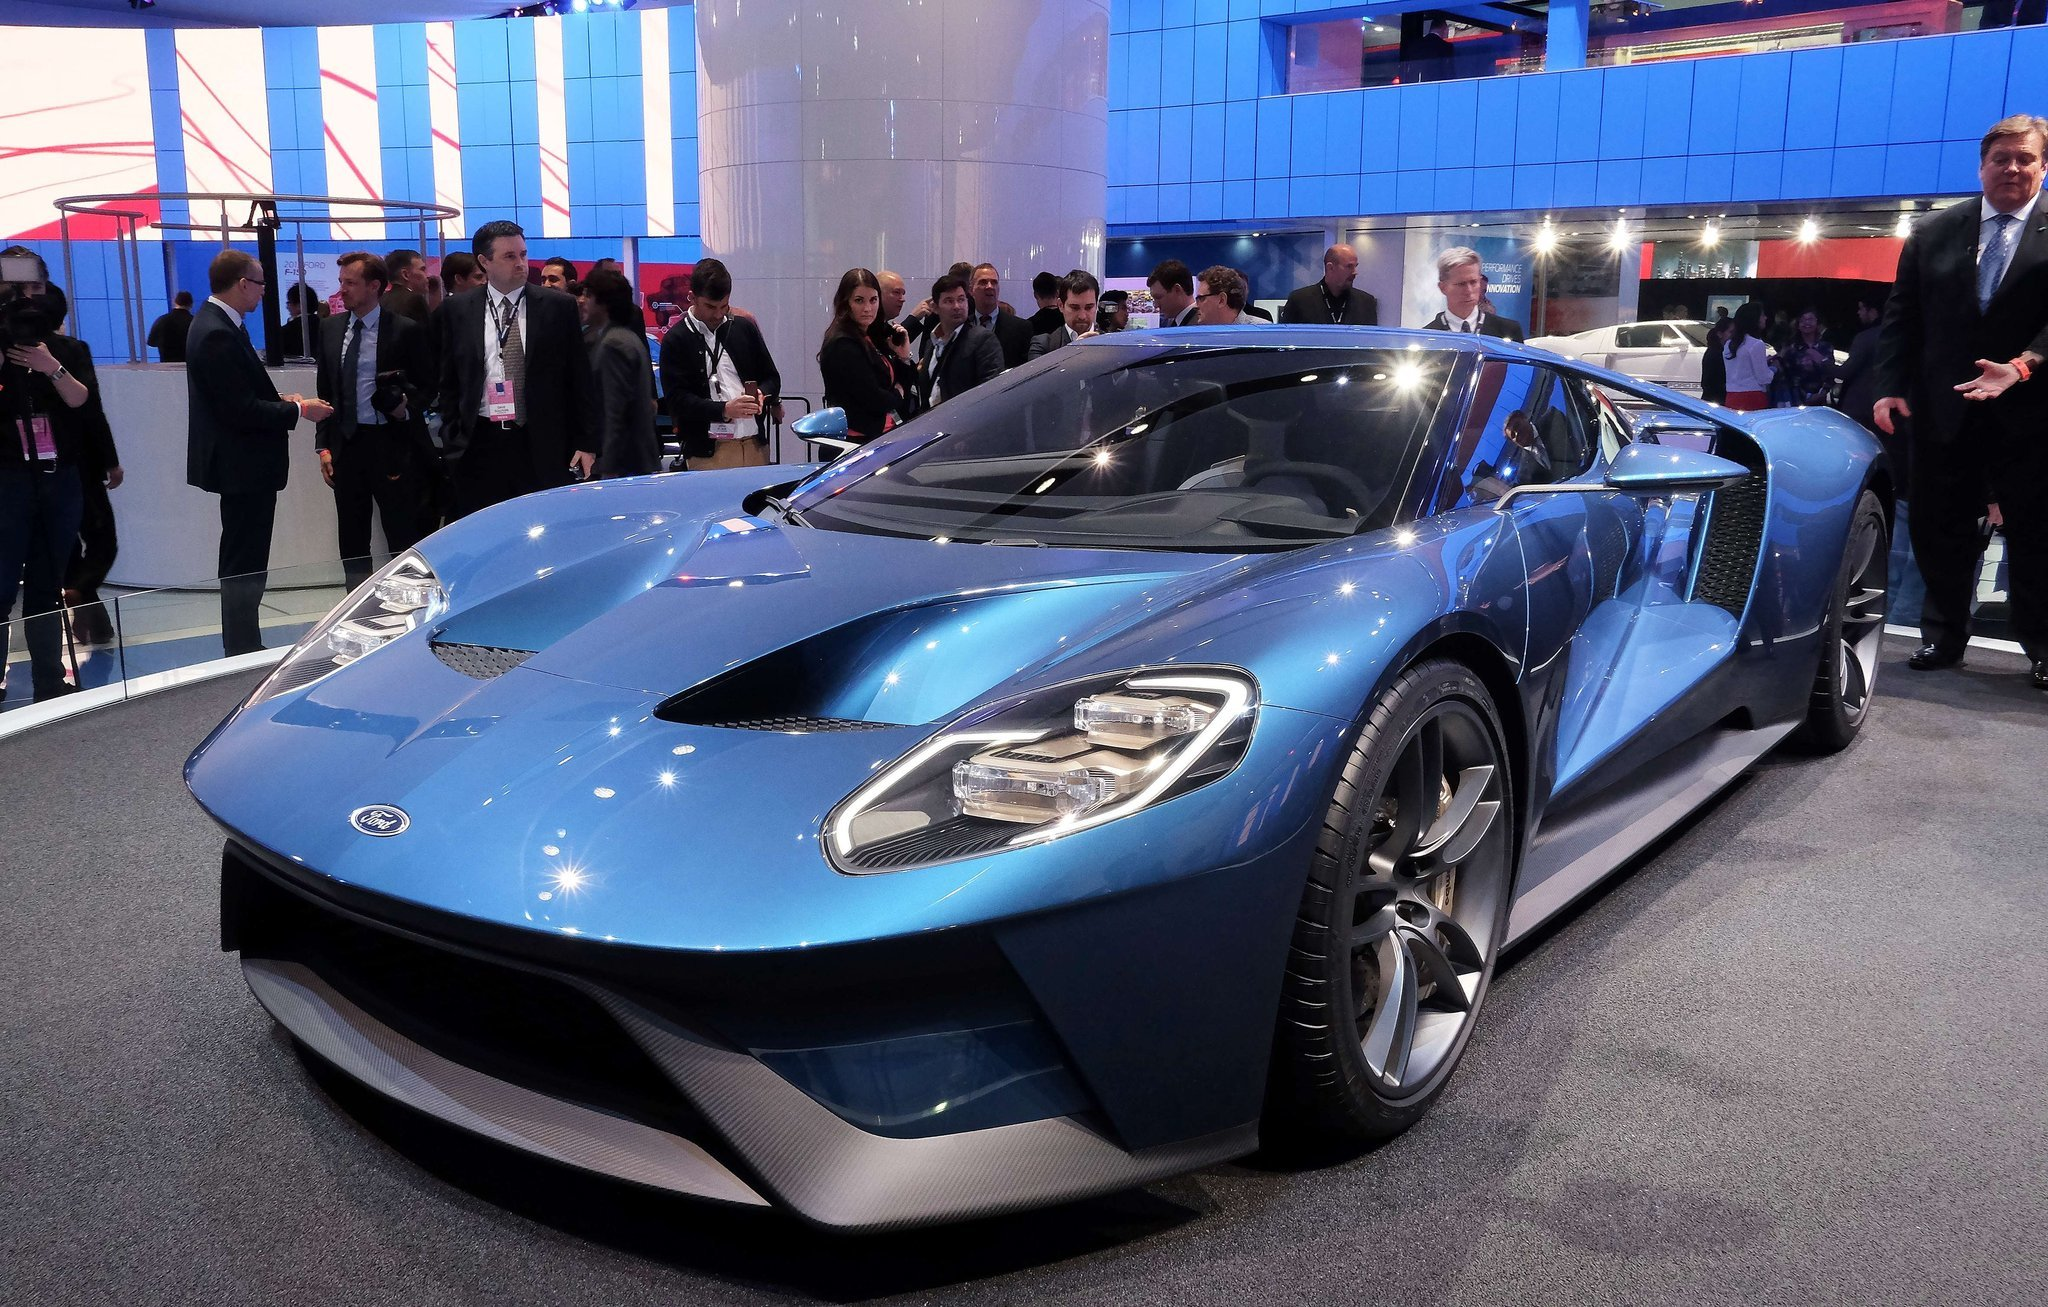 detroit auto show ford shows off gt supercar mustang gt350r raptor truck la times - 2015 Ford Gt Auto Show